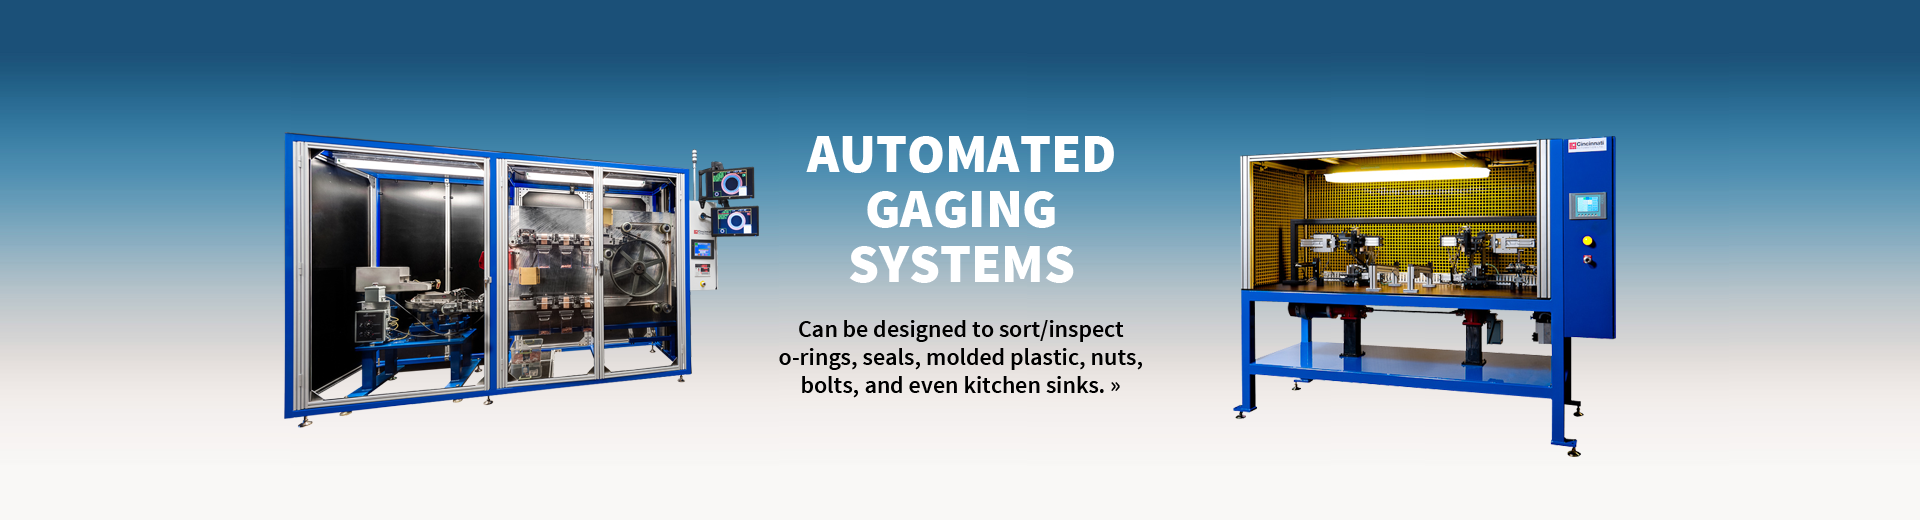 Automated Gaging Systems